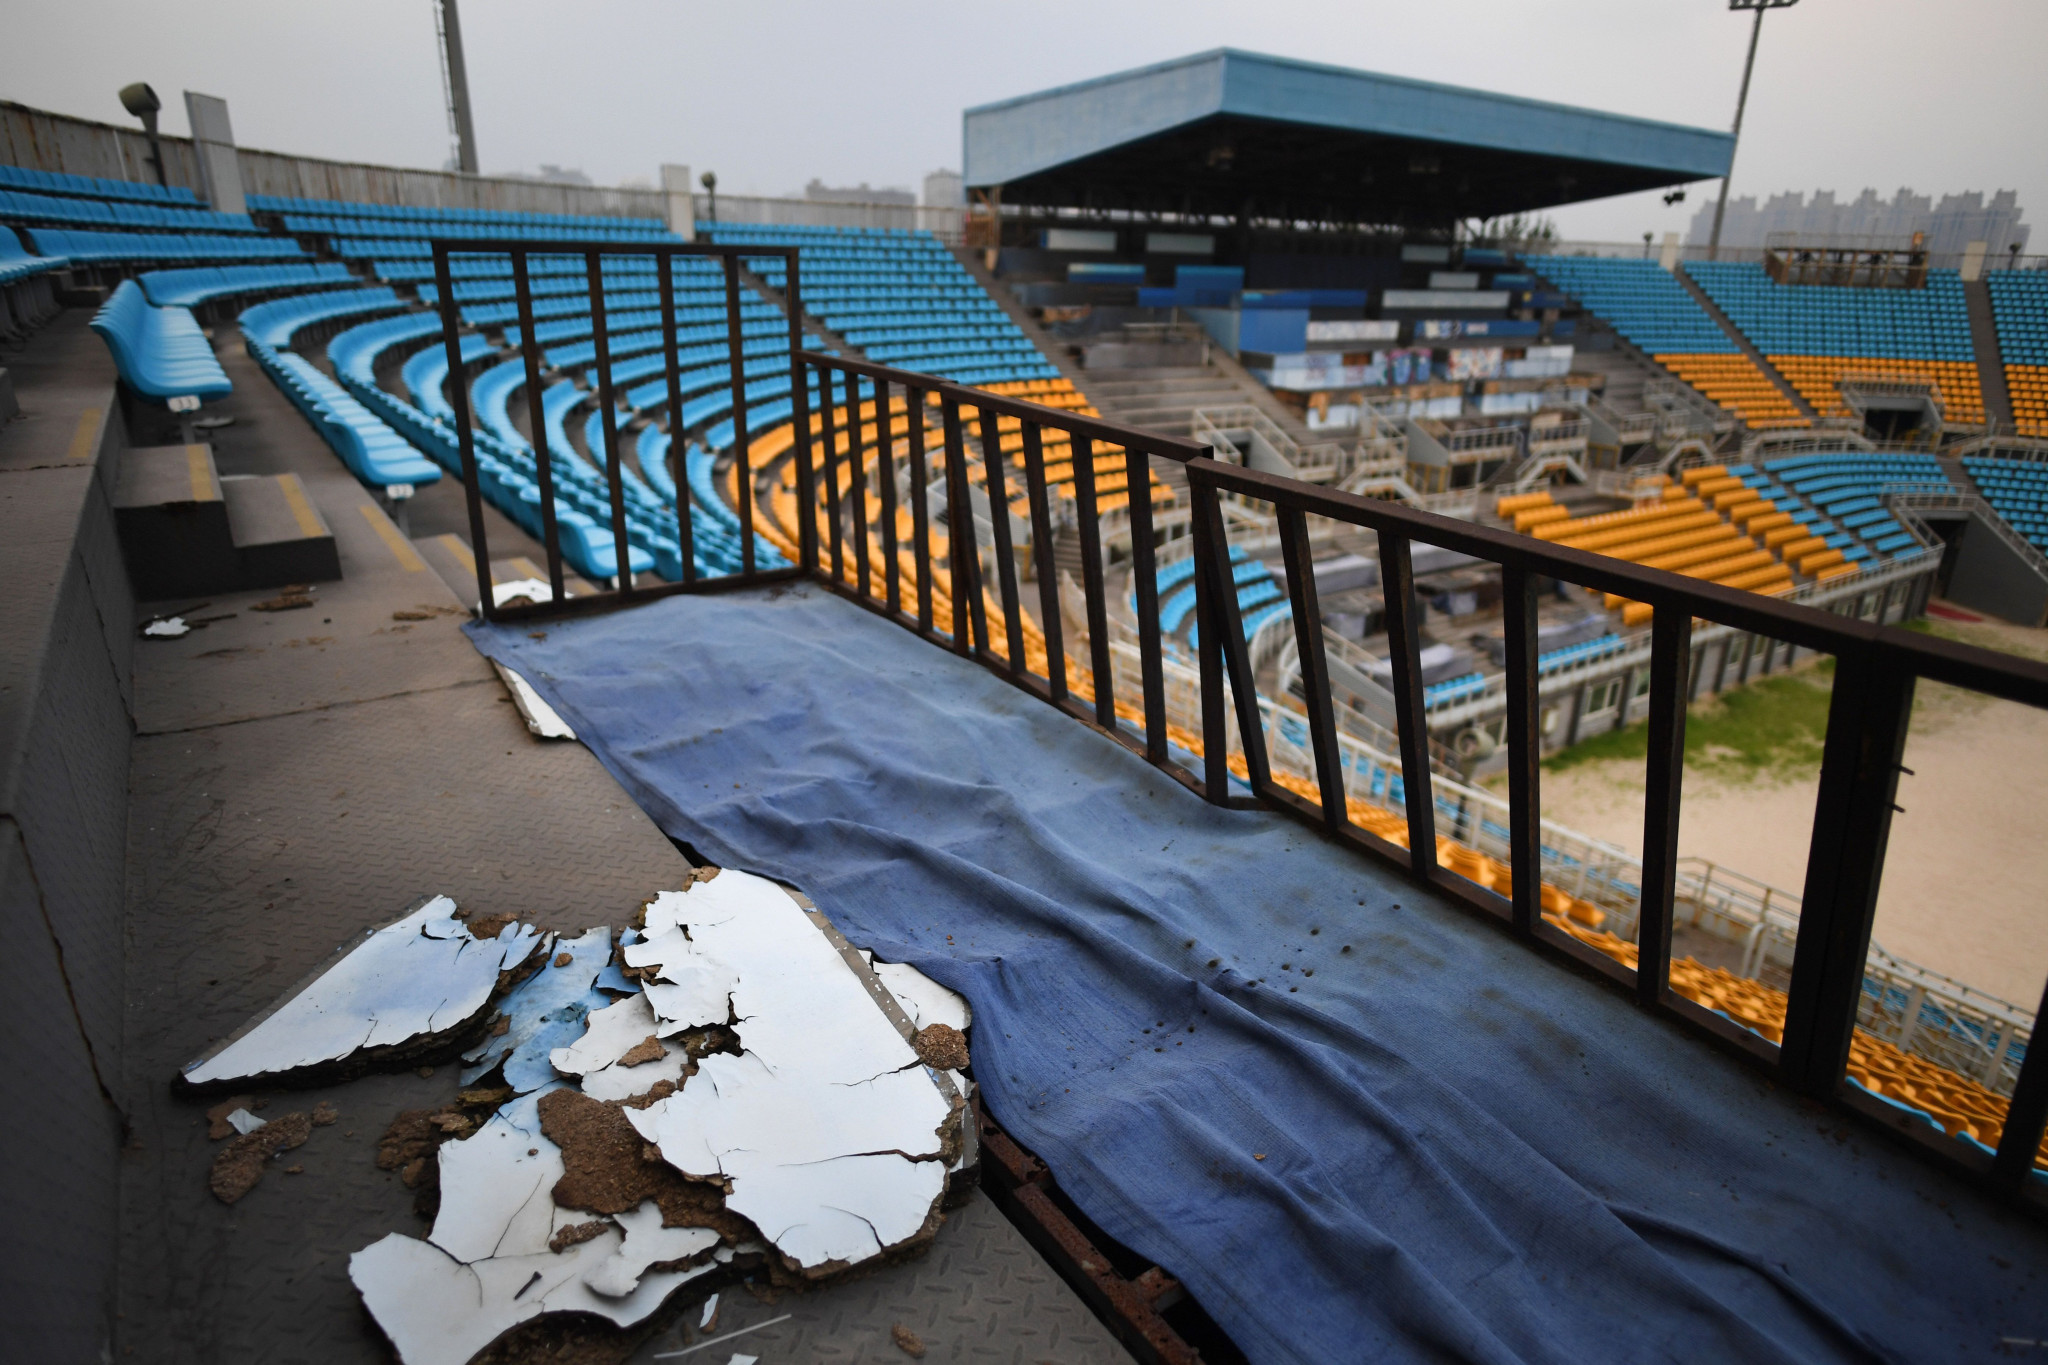 Pictures have emerged of decaying state of some of the facilities from the 2008 Olympics in Beijing ©Getty Images